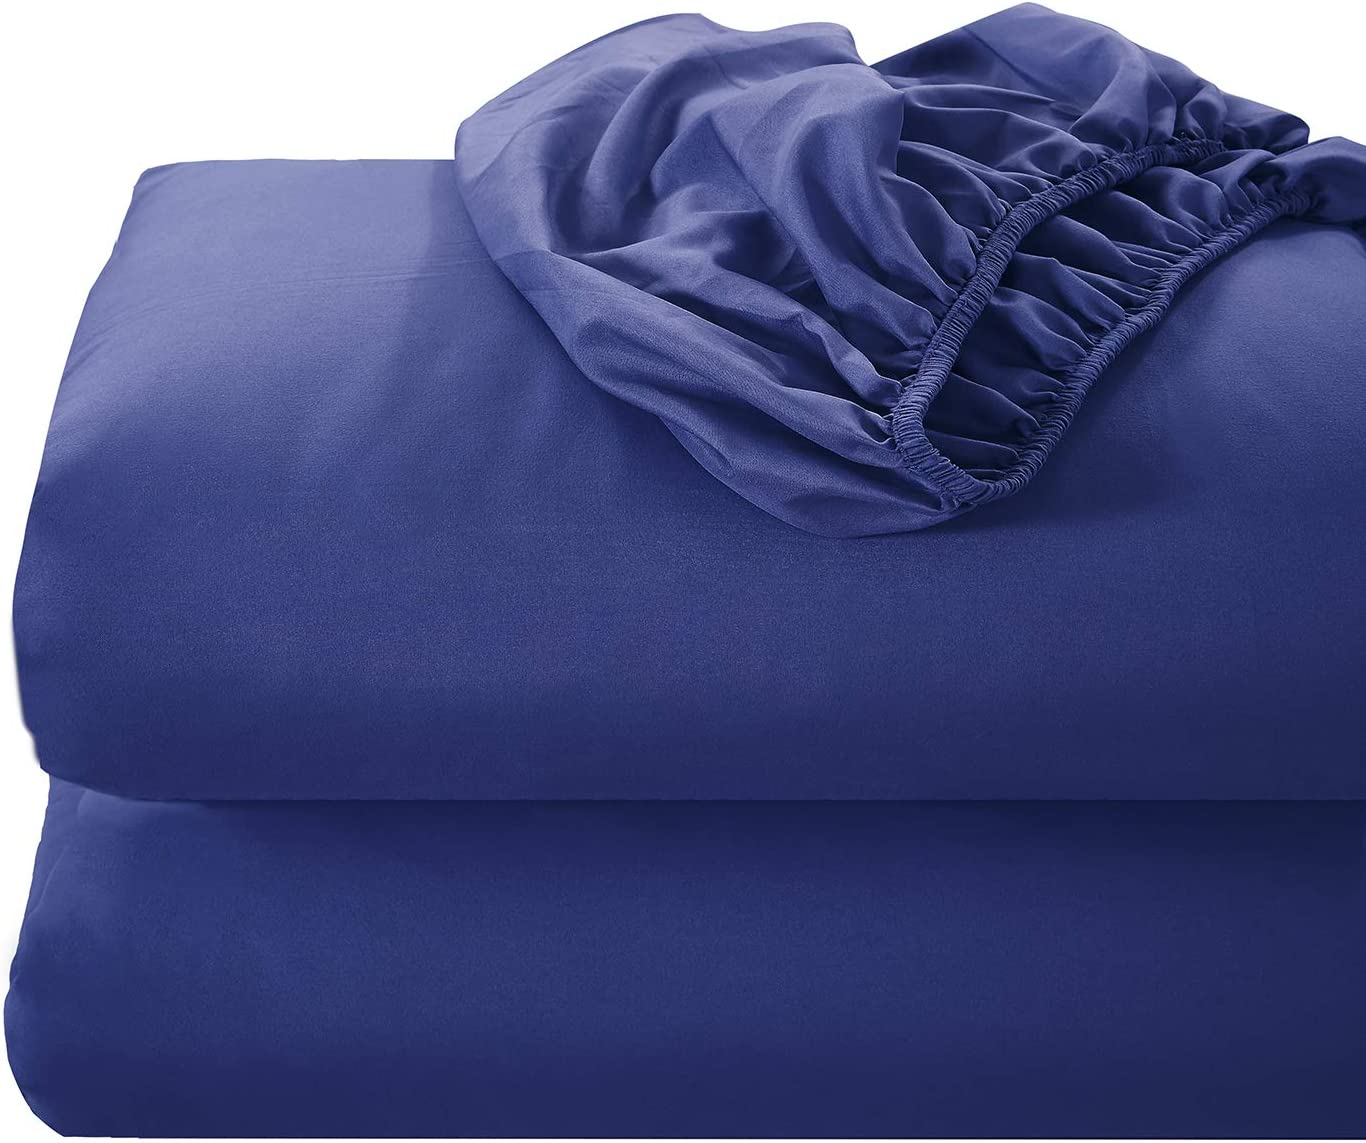 Gray, Queen SVOHZAV Fitted Bottom Sheet,16-Inch Deep Pocket,Premium 1800 Ultra-Soft Wrinkle Resistant Microfiber,Stain Resistant Hypoallergenic,Easy Fit